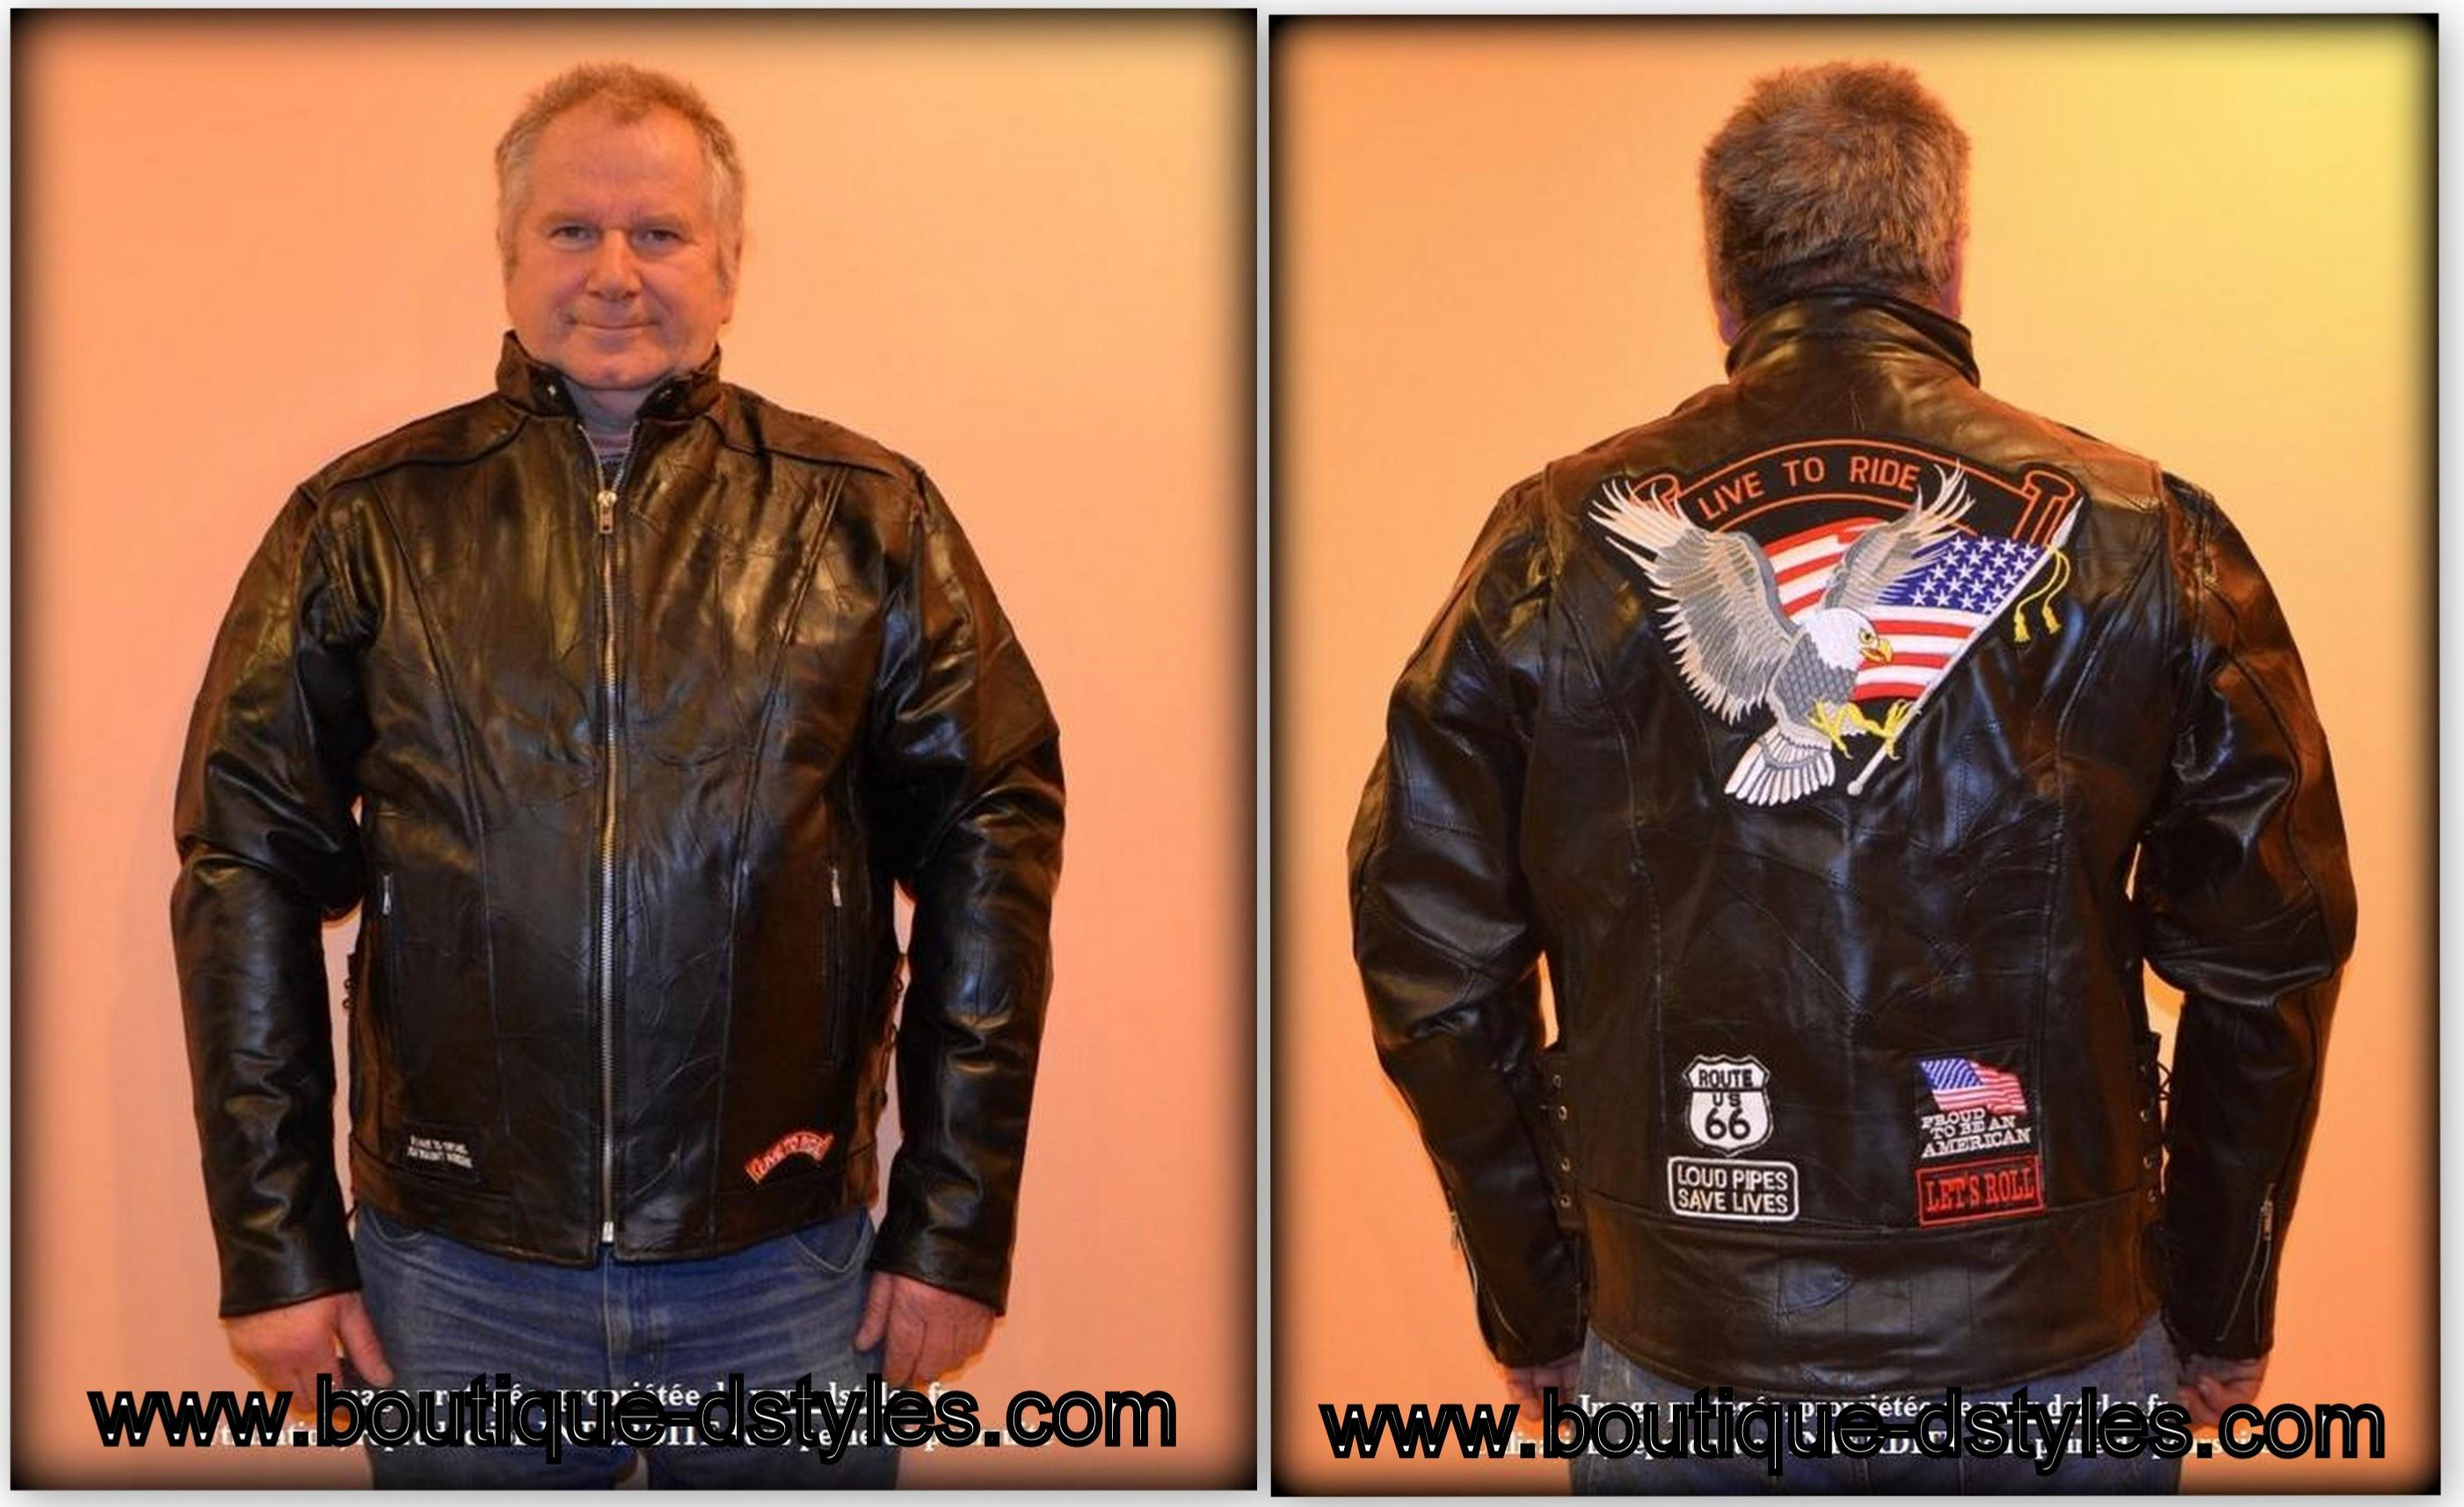 blouson jacket aigle live to ride s m l xl 2x 3x 4xl. Black Bedroom Furniture Sets. Home Design Ideas